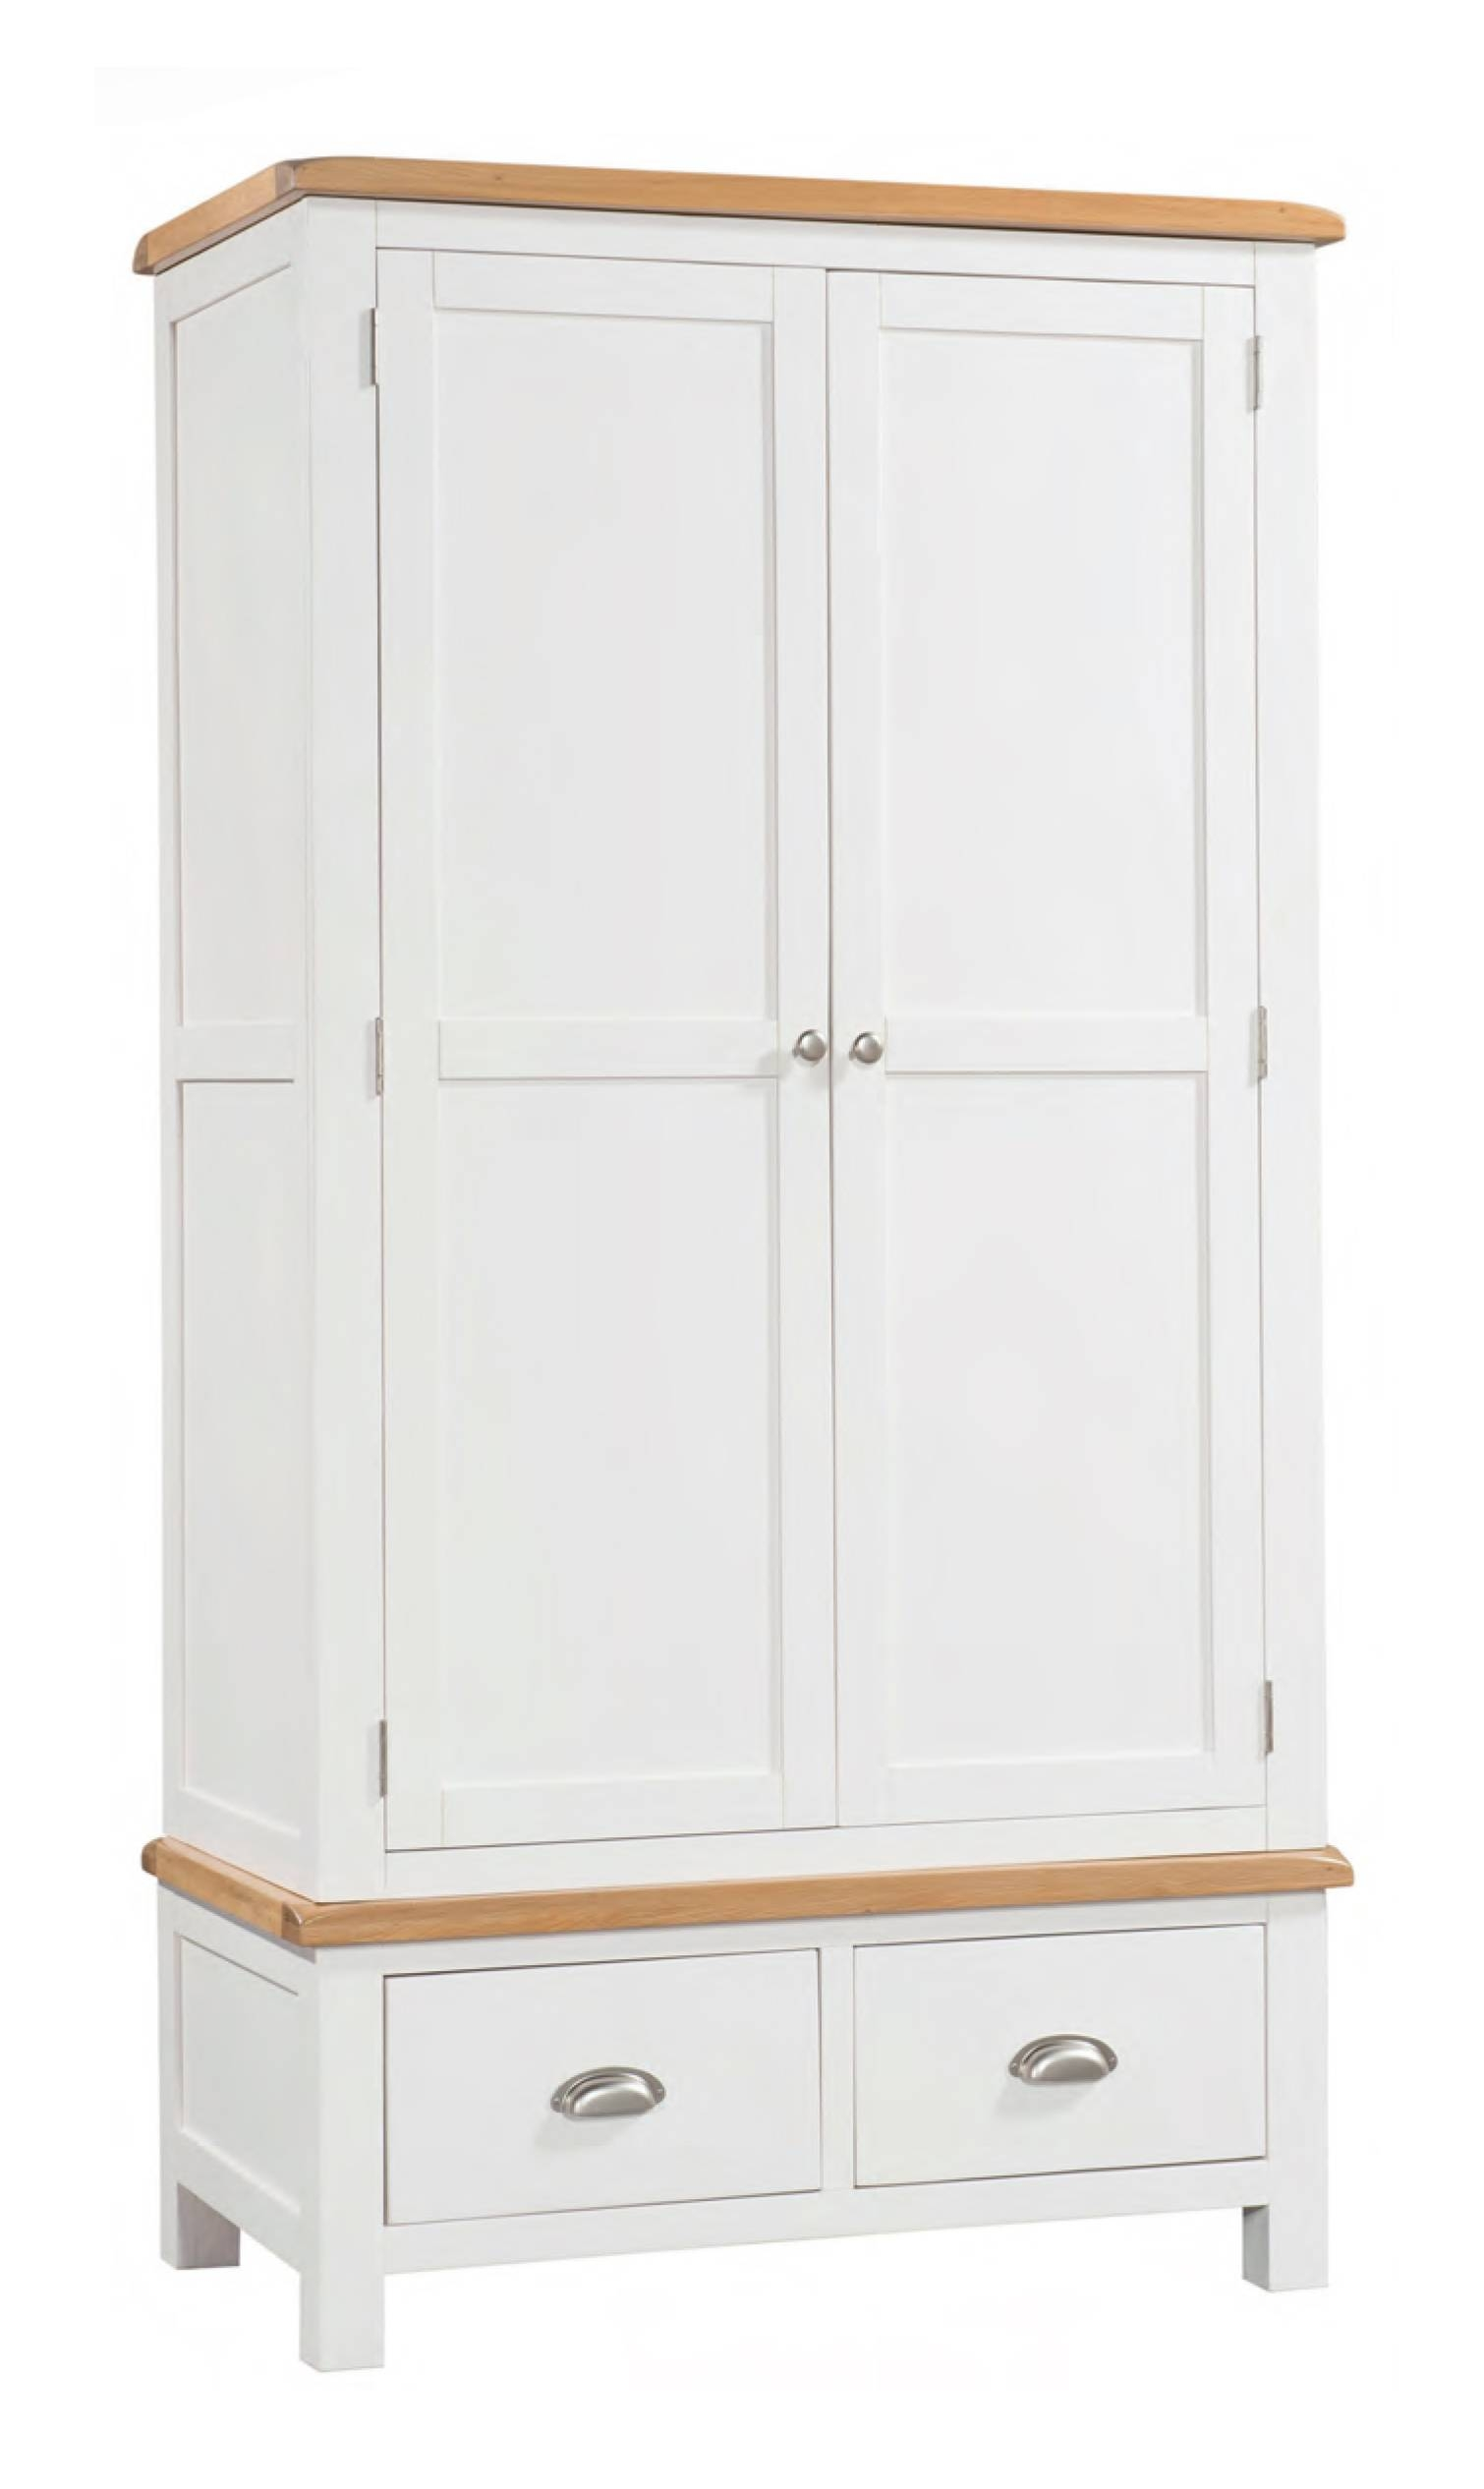 Solid Oak Wardrobes | Painted & Walnut Wardrobes | Free Delivery inside Double Rail Wardrobe With Drawers (Image 20 of 30)